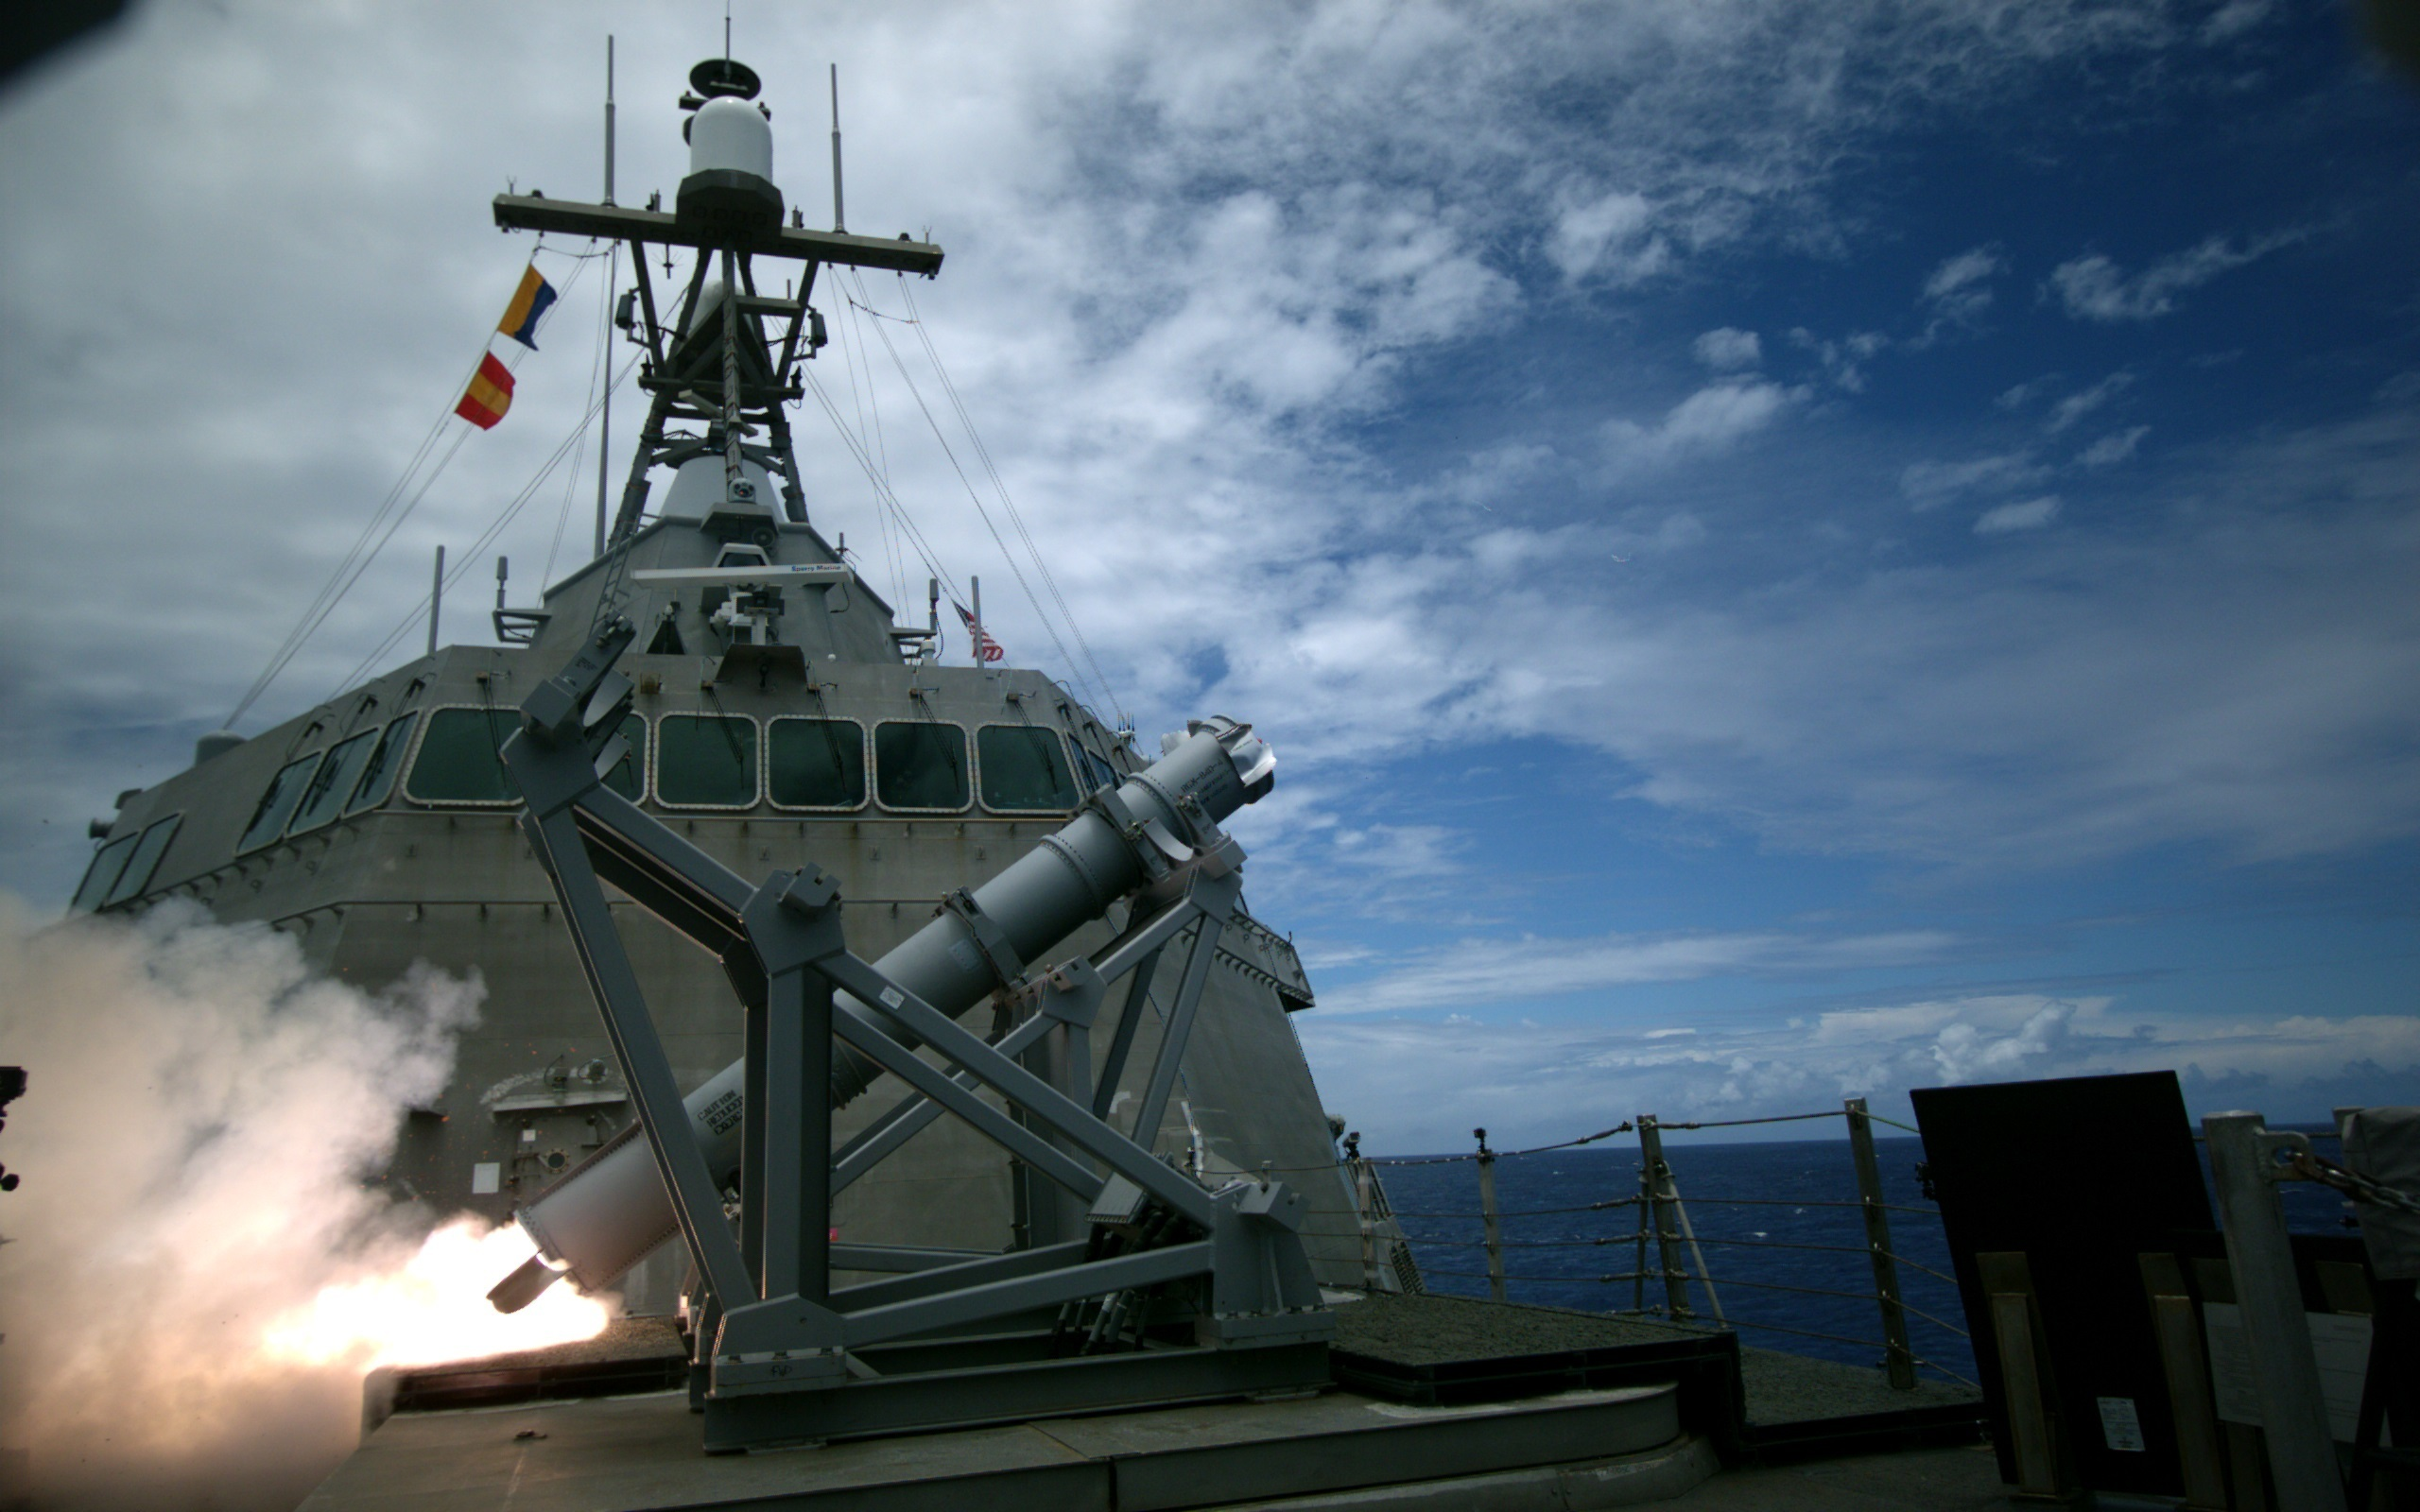 USS Coronado (LCS-4), an Independence-variant littoral combat ship, launches the first over-the-horizon missile engagement using a Harpoon Block 1C missile. US Navy Photo Twenty-six nations, 40 ships and submarines, more than 200 aircraft and 25,000 personnel are participating in RIMPAC from June 30 to Aug. 4, in and around the Hawaiian Islands and Southern California. The world's largest international maritime exercise, RIMPAC provides a unique training opportunity that helps participants foster and sustain the cooperative relationships that are critical to ensuring the safety of sea lanes and security on the world's oceans. RIMPAC 2016 is the 25th exercise in the series that began in 1971. (U.S. Navy photo by Lt. Bryce Hadley/Released)